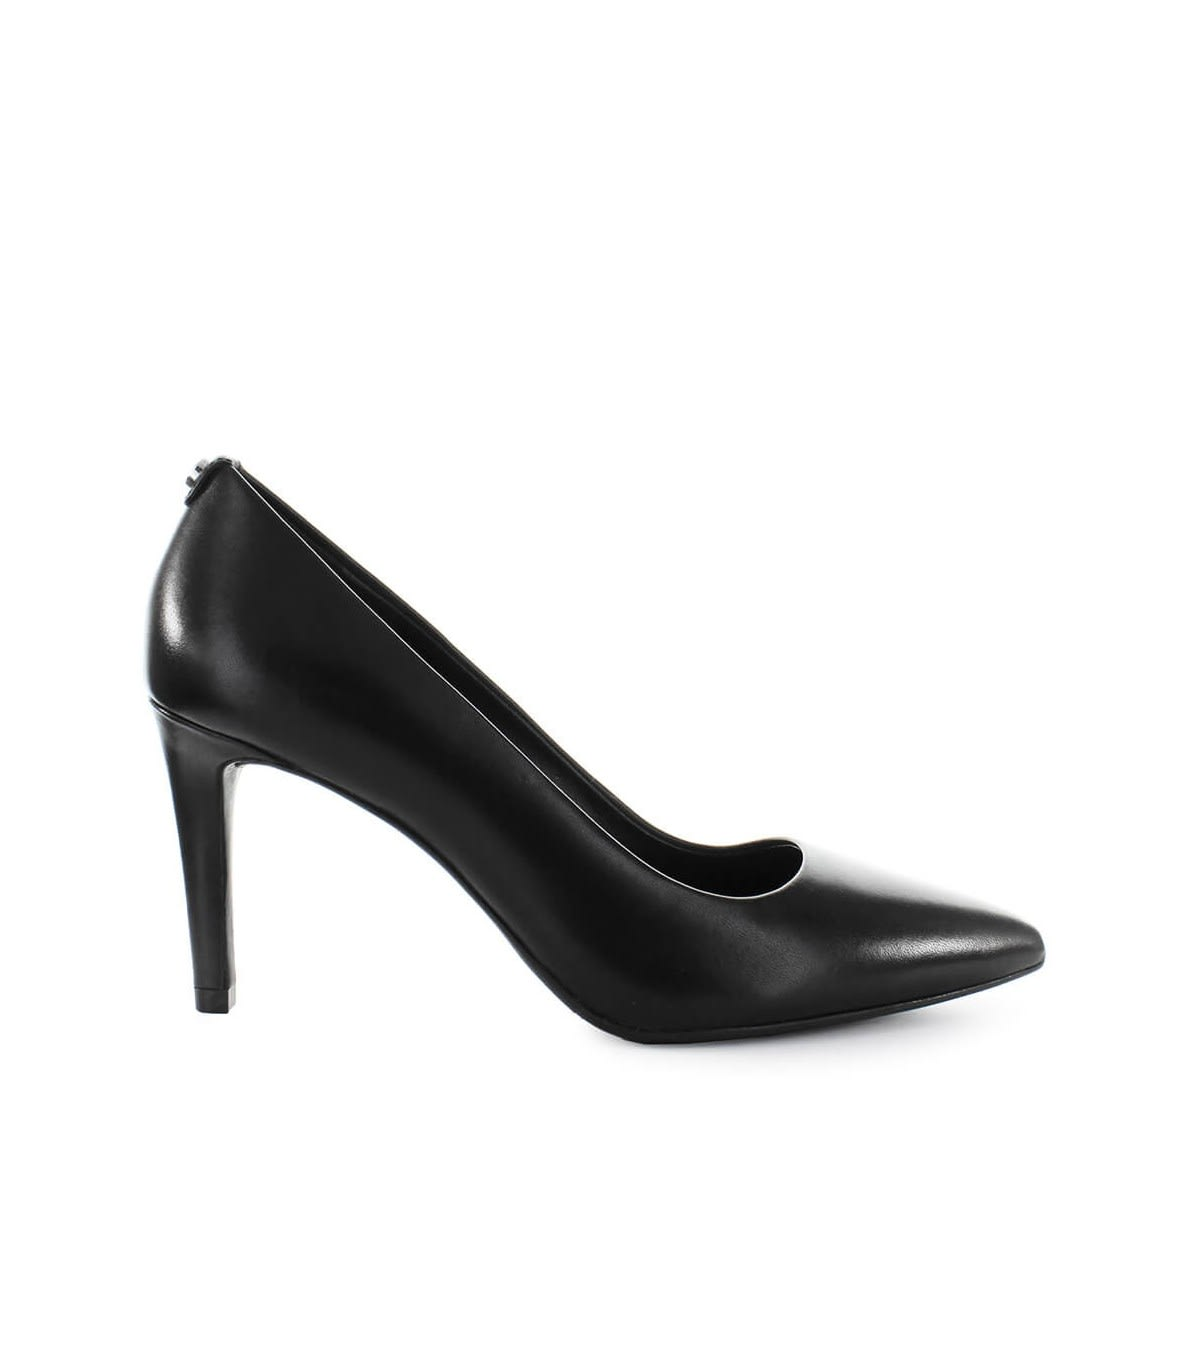 Michael Kors DOROTHY FLEX BLACK LEATHER PUMP